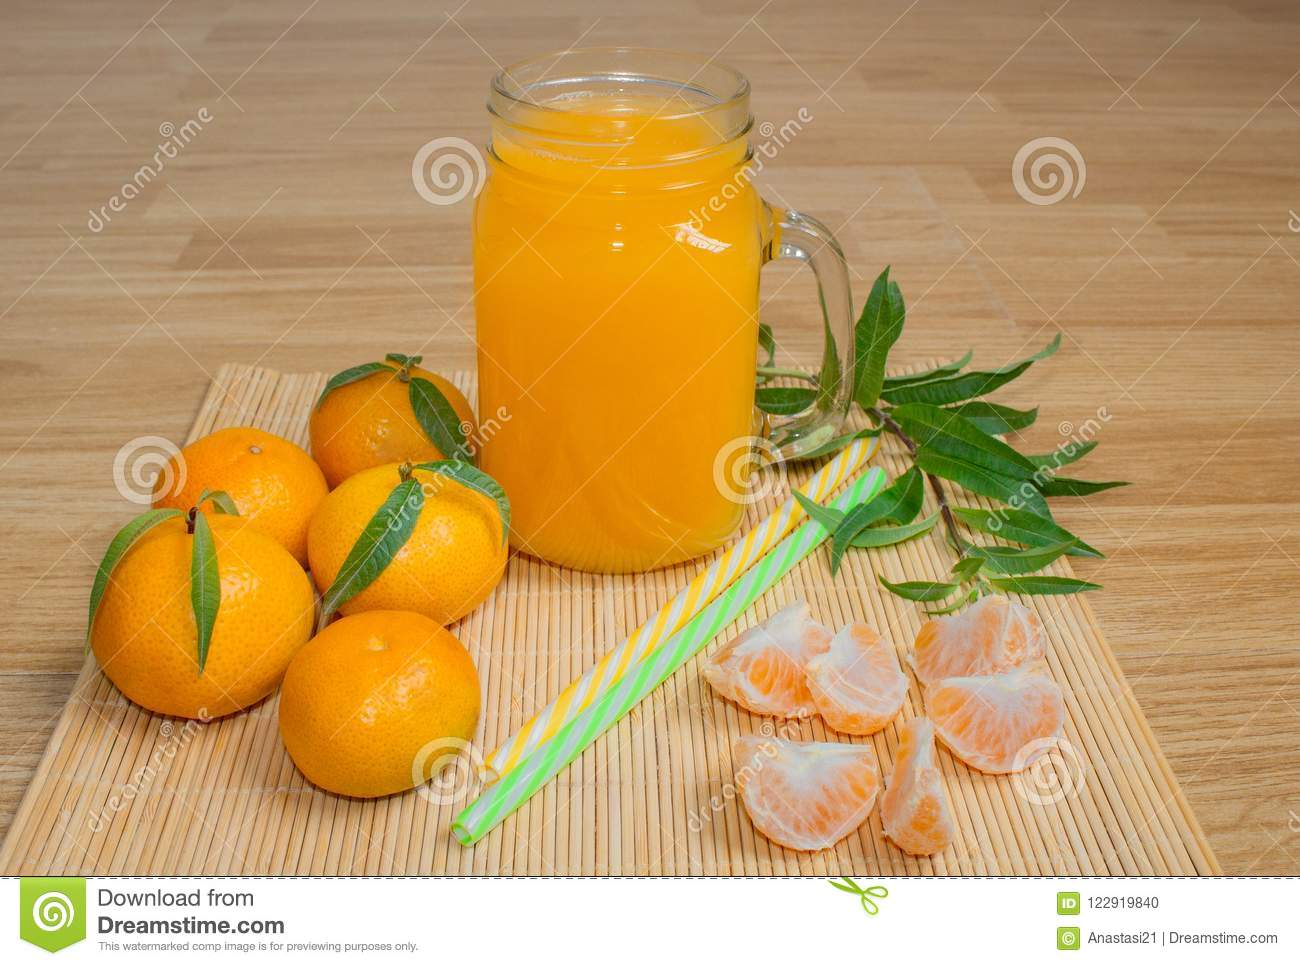 Still life. A transparent mug with a handle with freshly squeezed tangerine juice. And fresh tangerines.